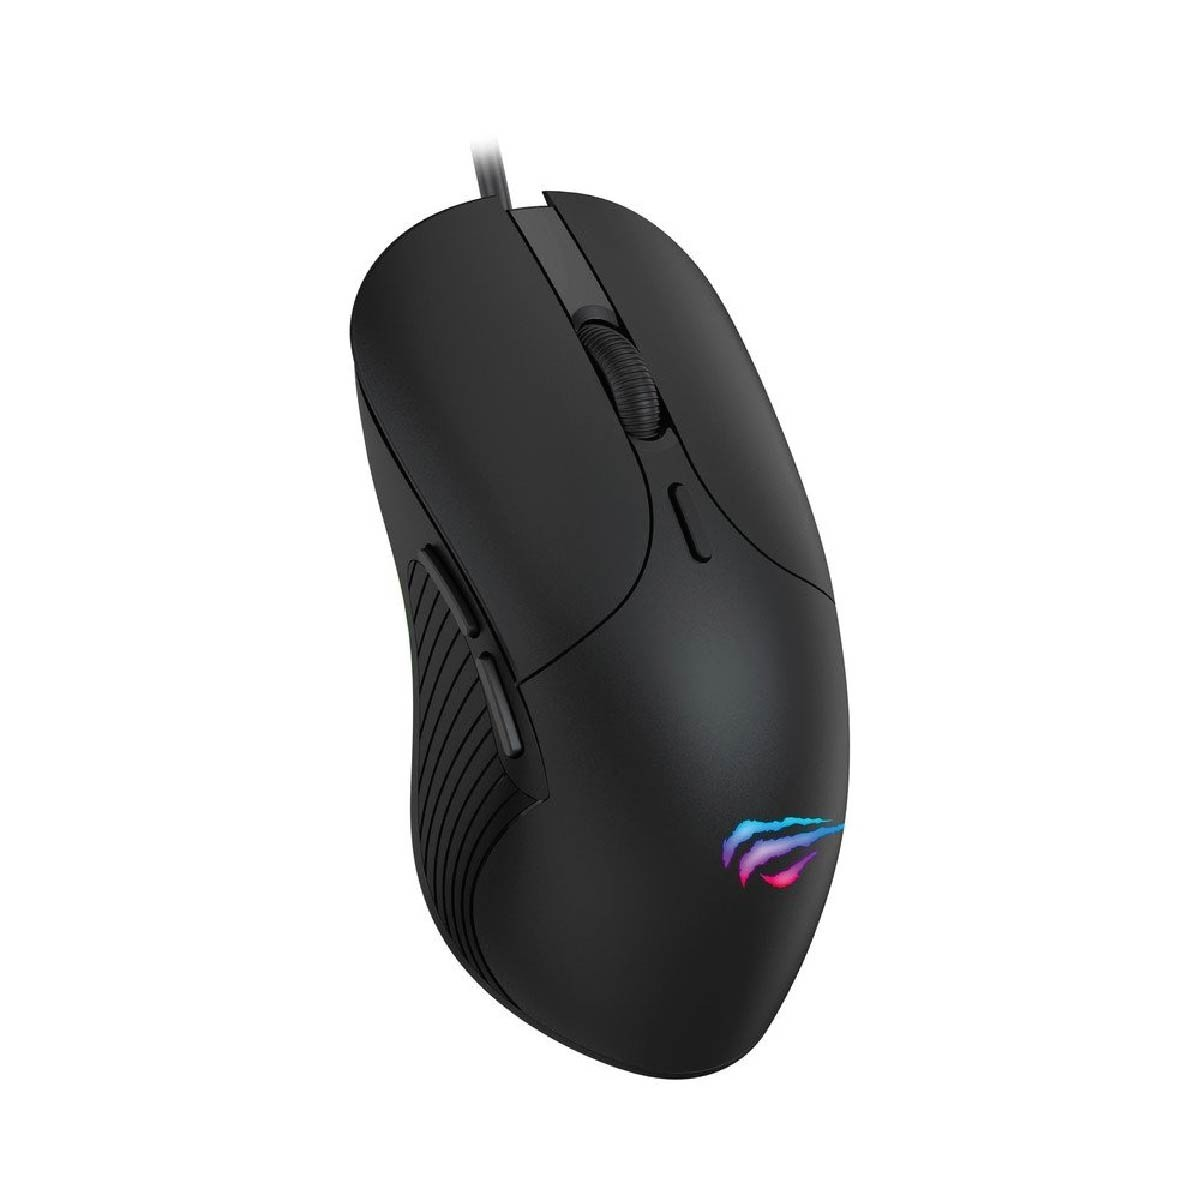 Mouse Gamer Havit MS-1020 RGB Backlit 4200DPI